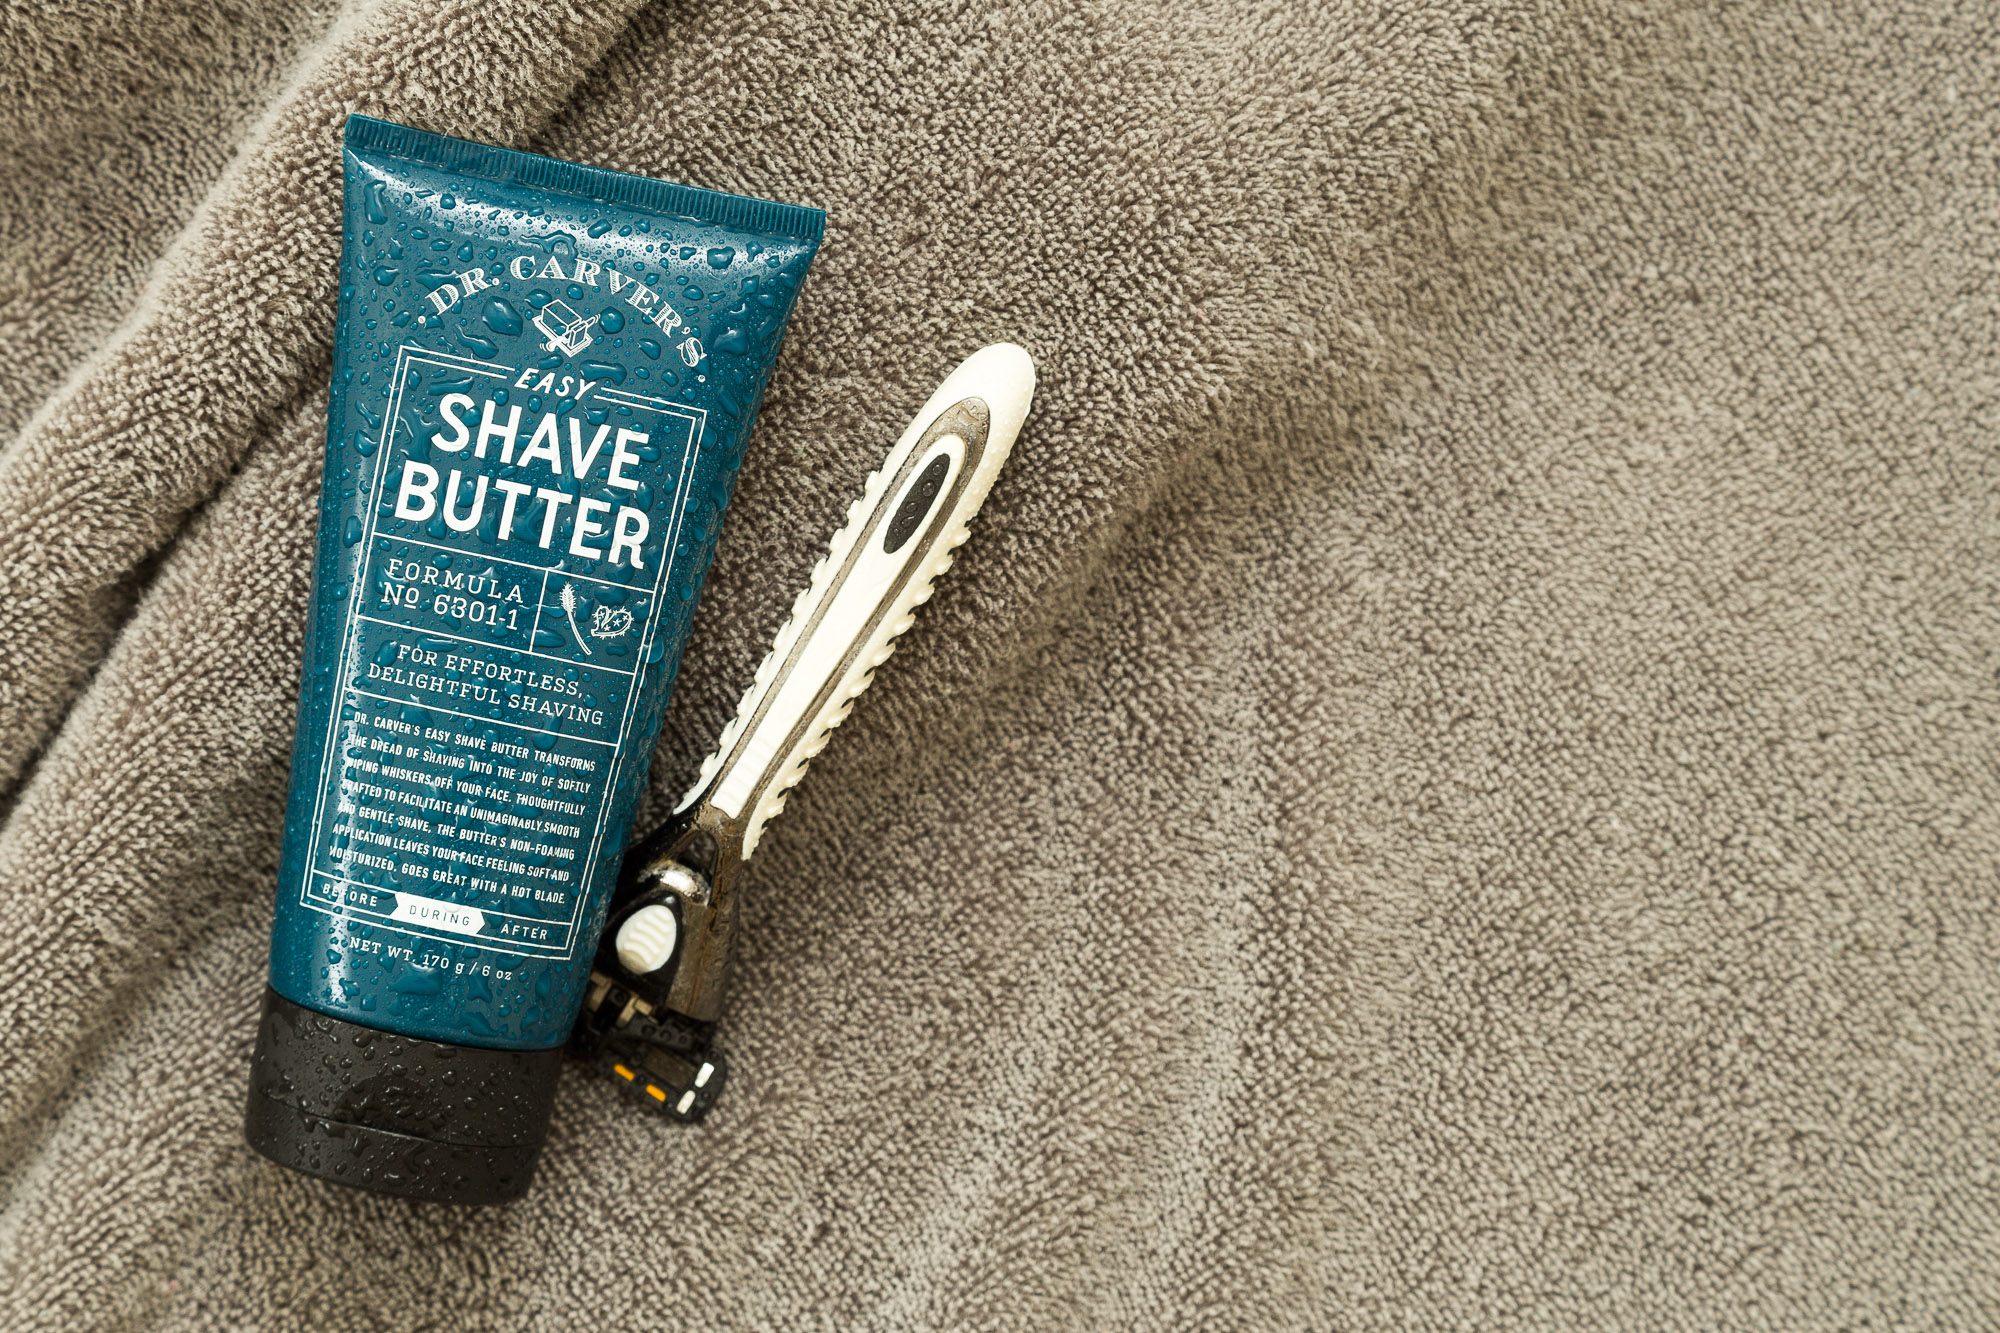 Dollar Shave Club Dr Carver S Easy Shave Butter Review My Legit Reviews